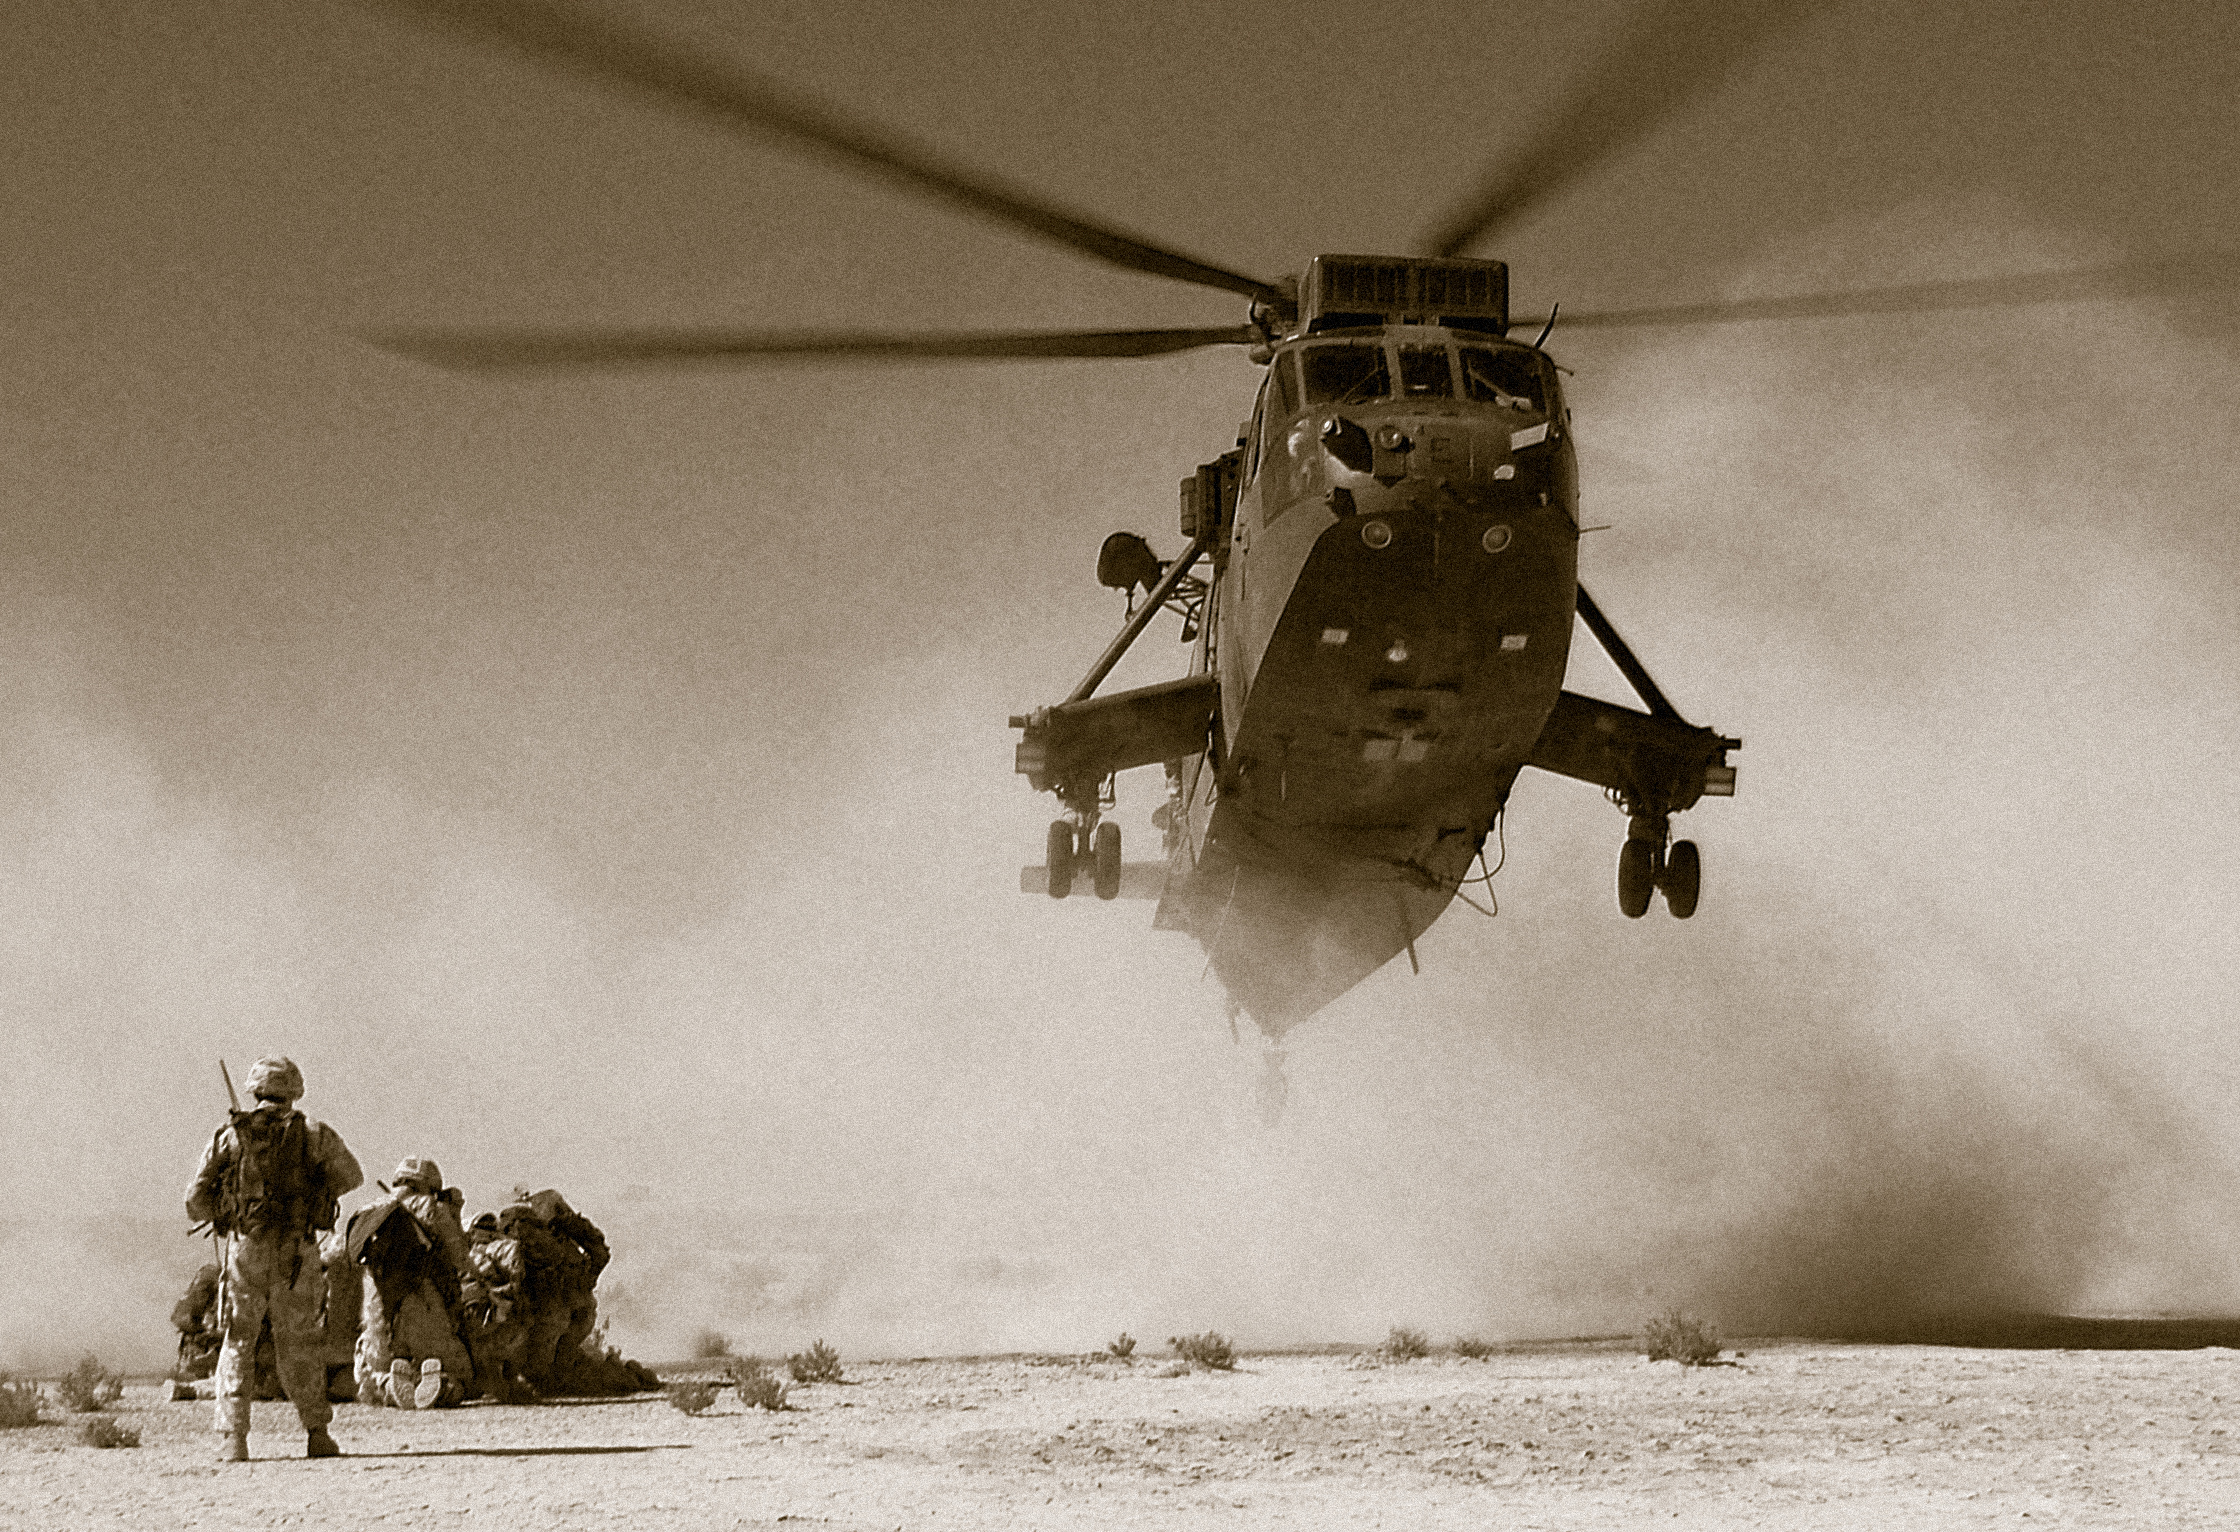 Sea King helicopter picks up troops east of Basrah International Airport, Iraq. John Shardlow, Creative Commons Attribution-NonCommercial-ShareAlike 2.0 Generic (CC BY-NC-SA 2.0)